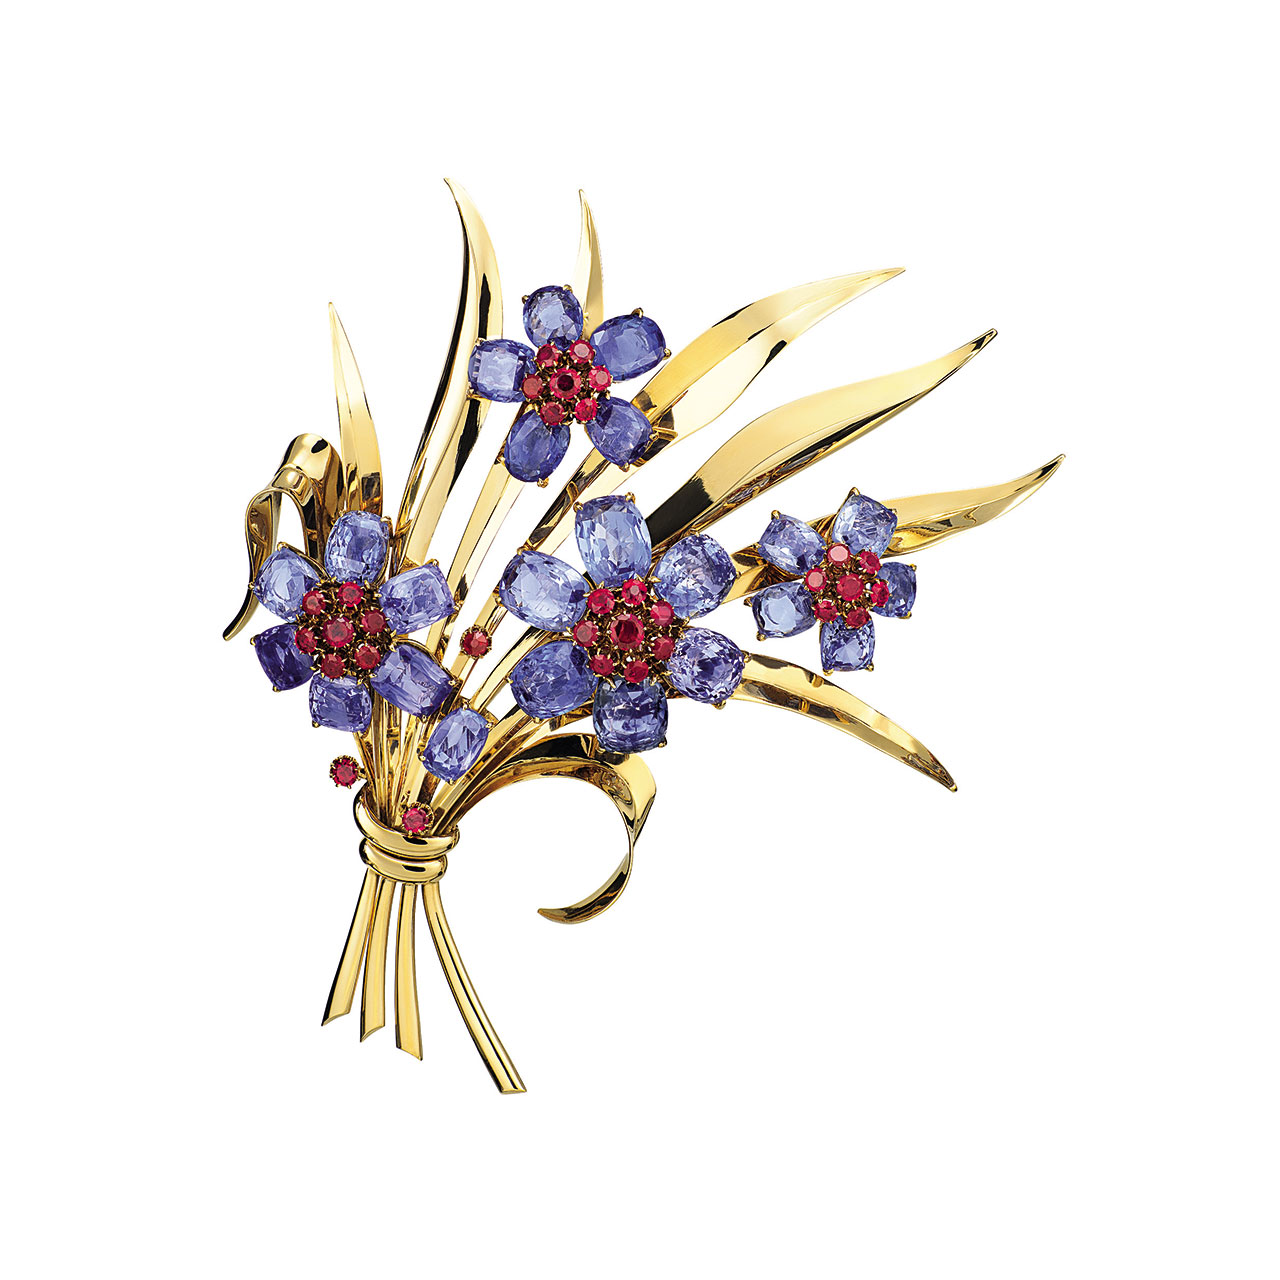 Bouquet clip, 1940. Gold, sapphires, rubies, diamonds. Van Cleef & Arpels Collection. Photo by Patrick Gries © Van Cleef & Arpels.